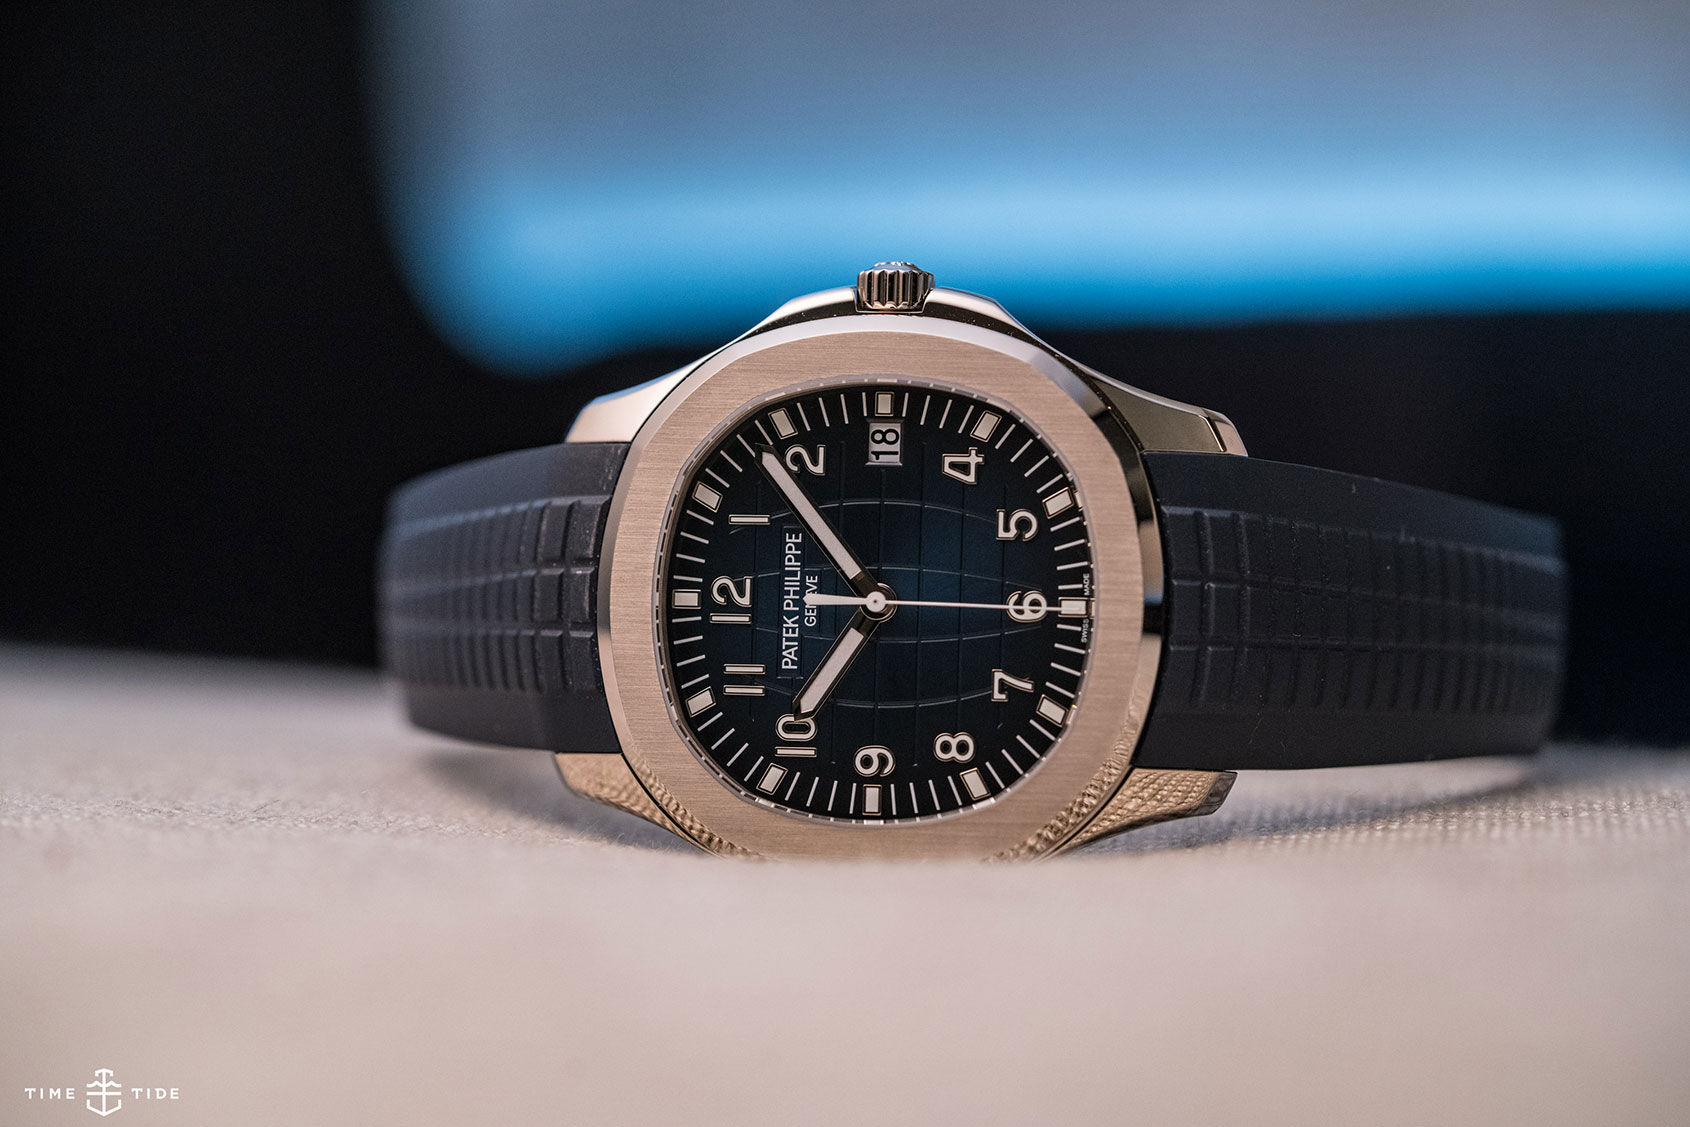 INTRODUCING: Coming of age – the Patek Philippe 20th Anniversary Aquanaut Ref. 5168G